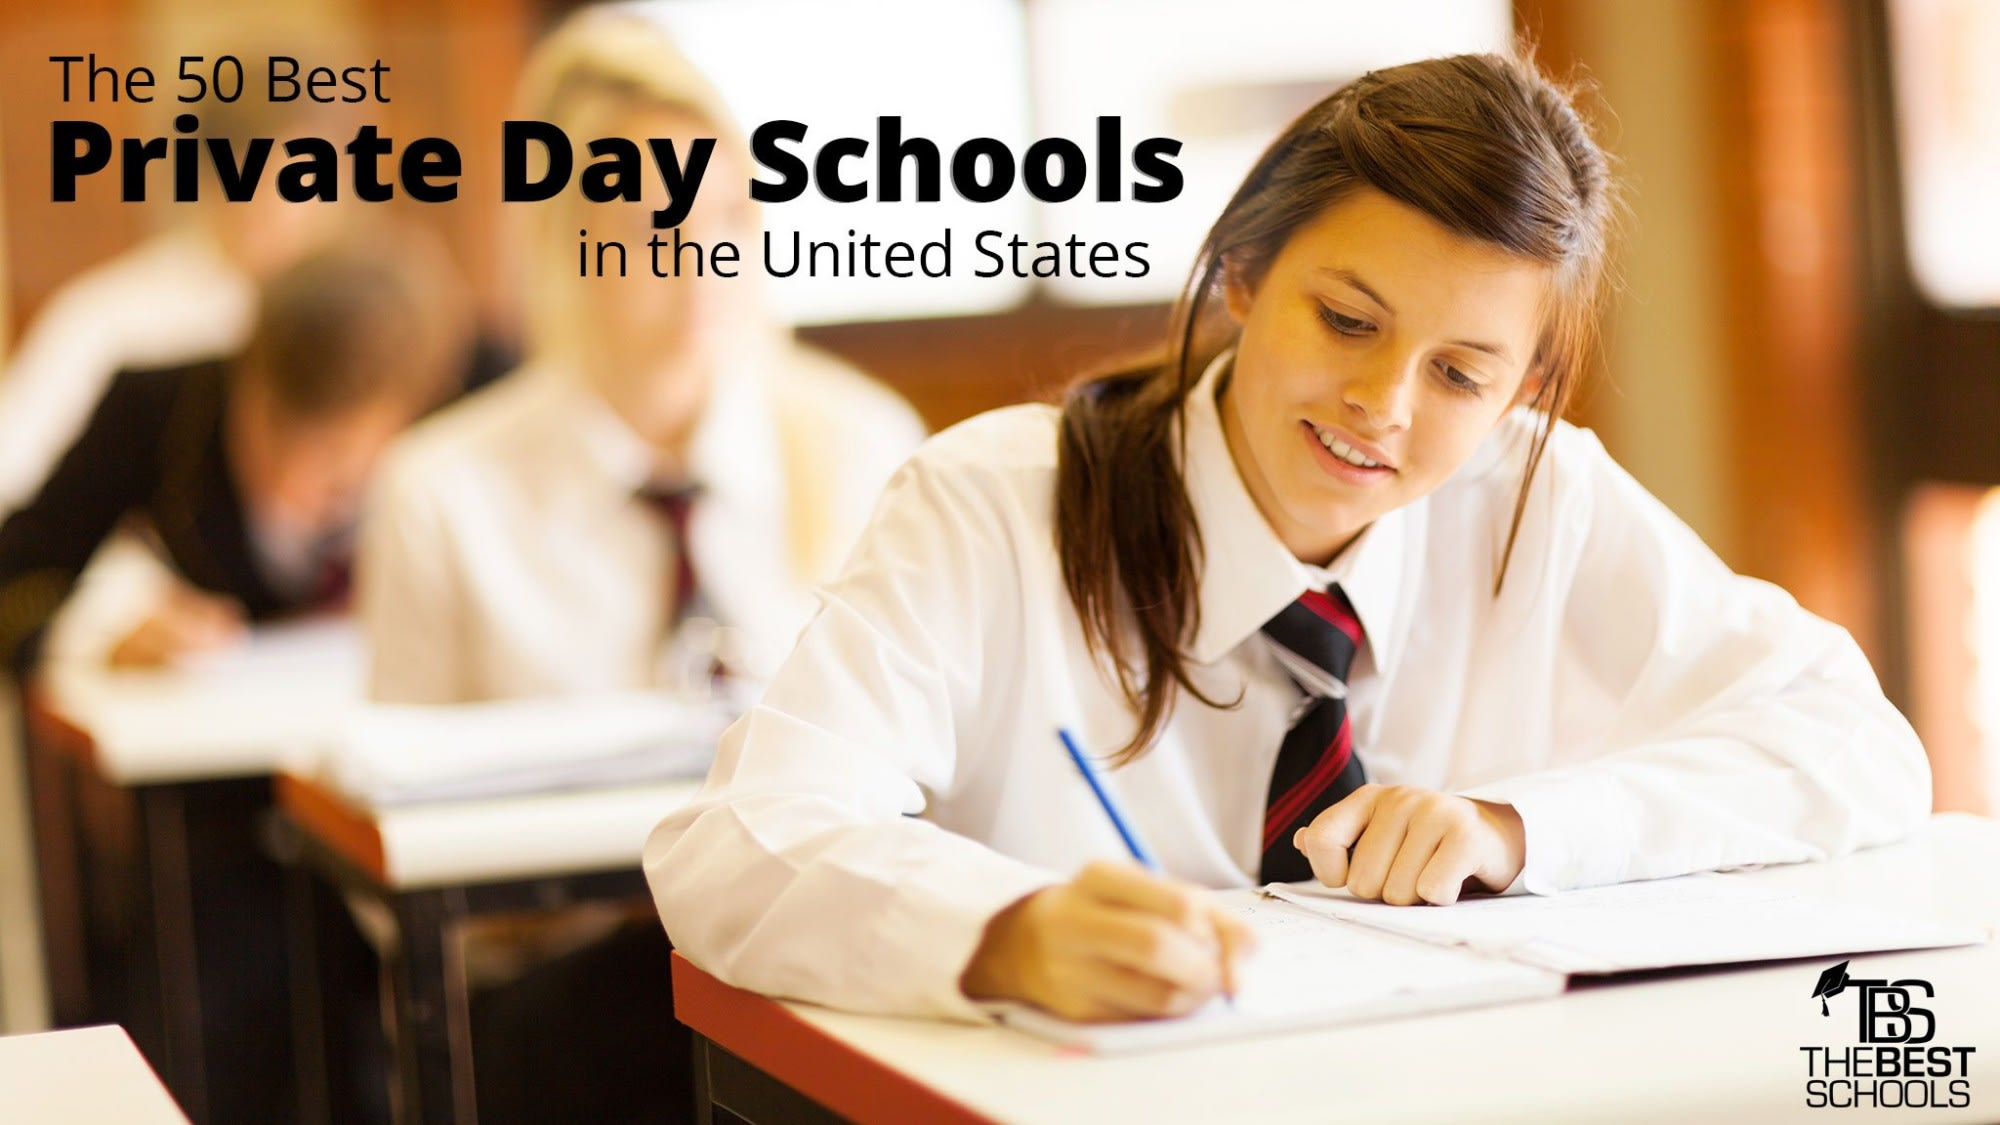 American High School Full Movie 2009 the 50 best private day schools in the united states